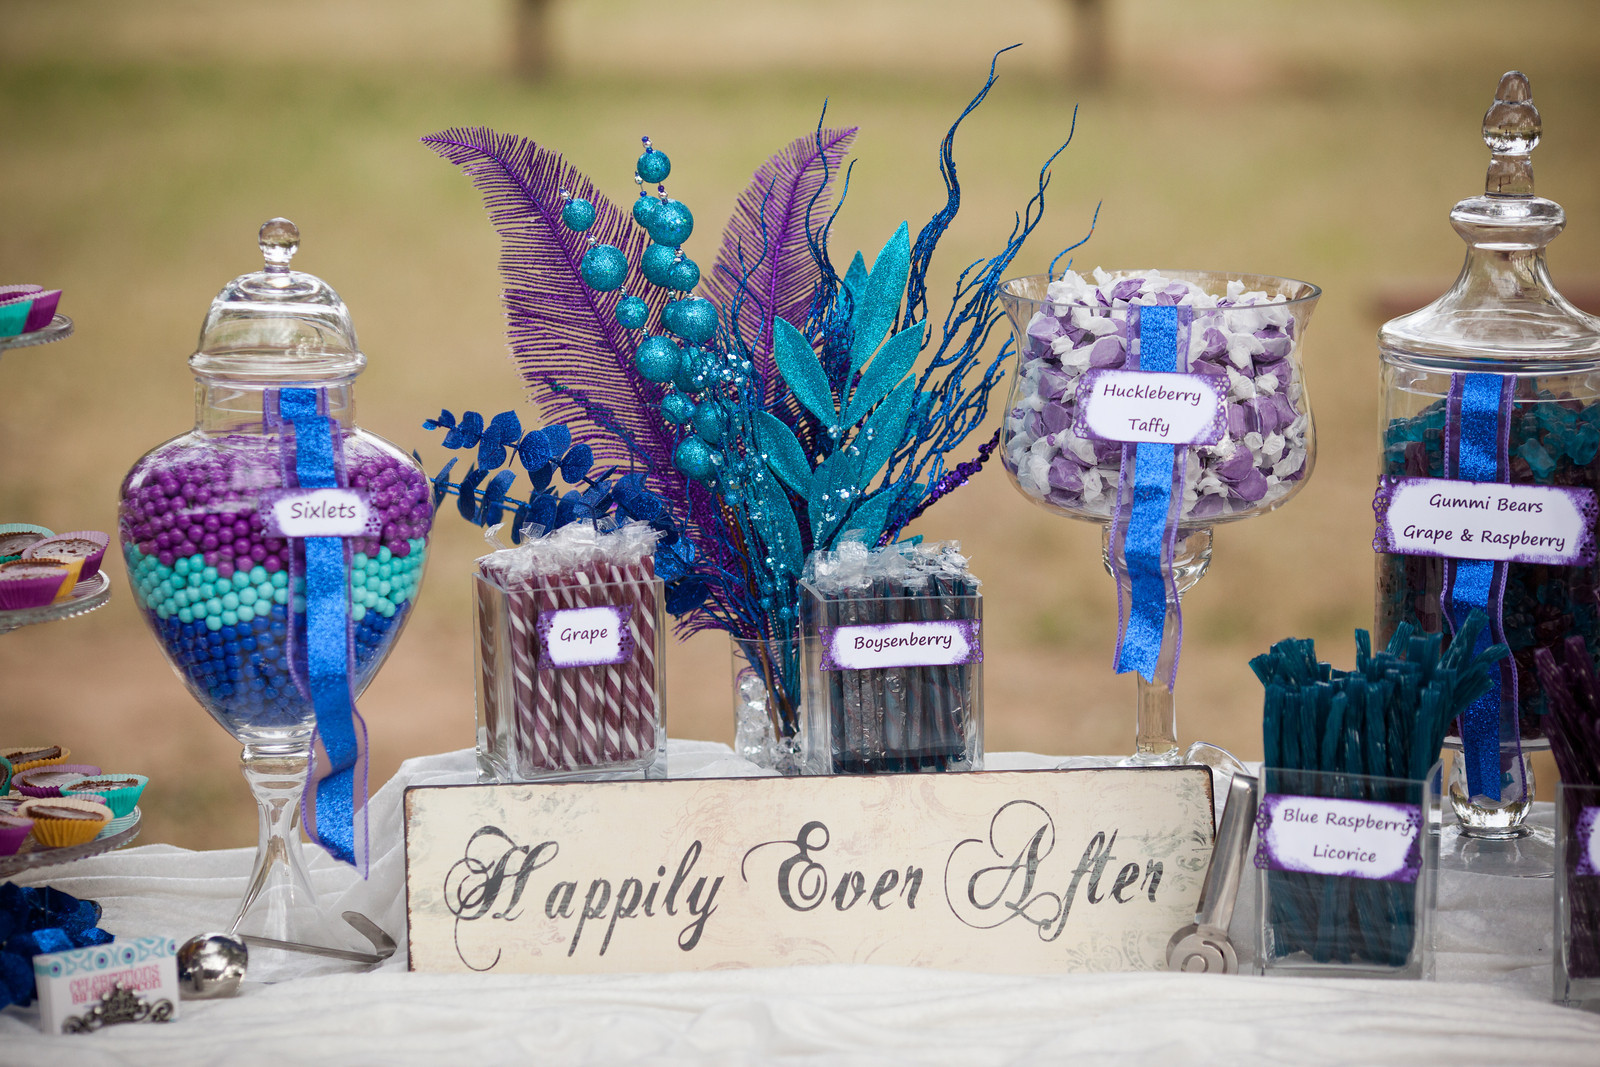 Celebrations by Amy Bacon: Review from our 11.12.11 Wedding Candy Buffet